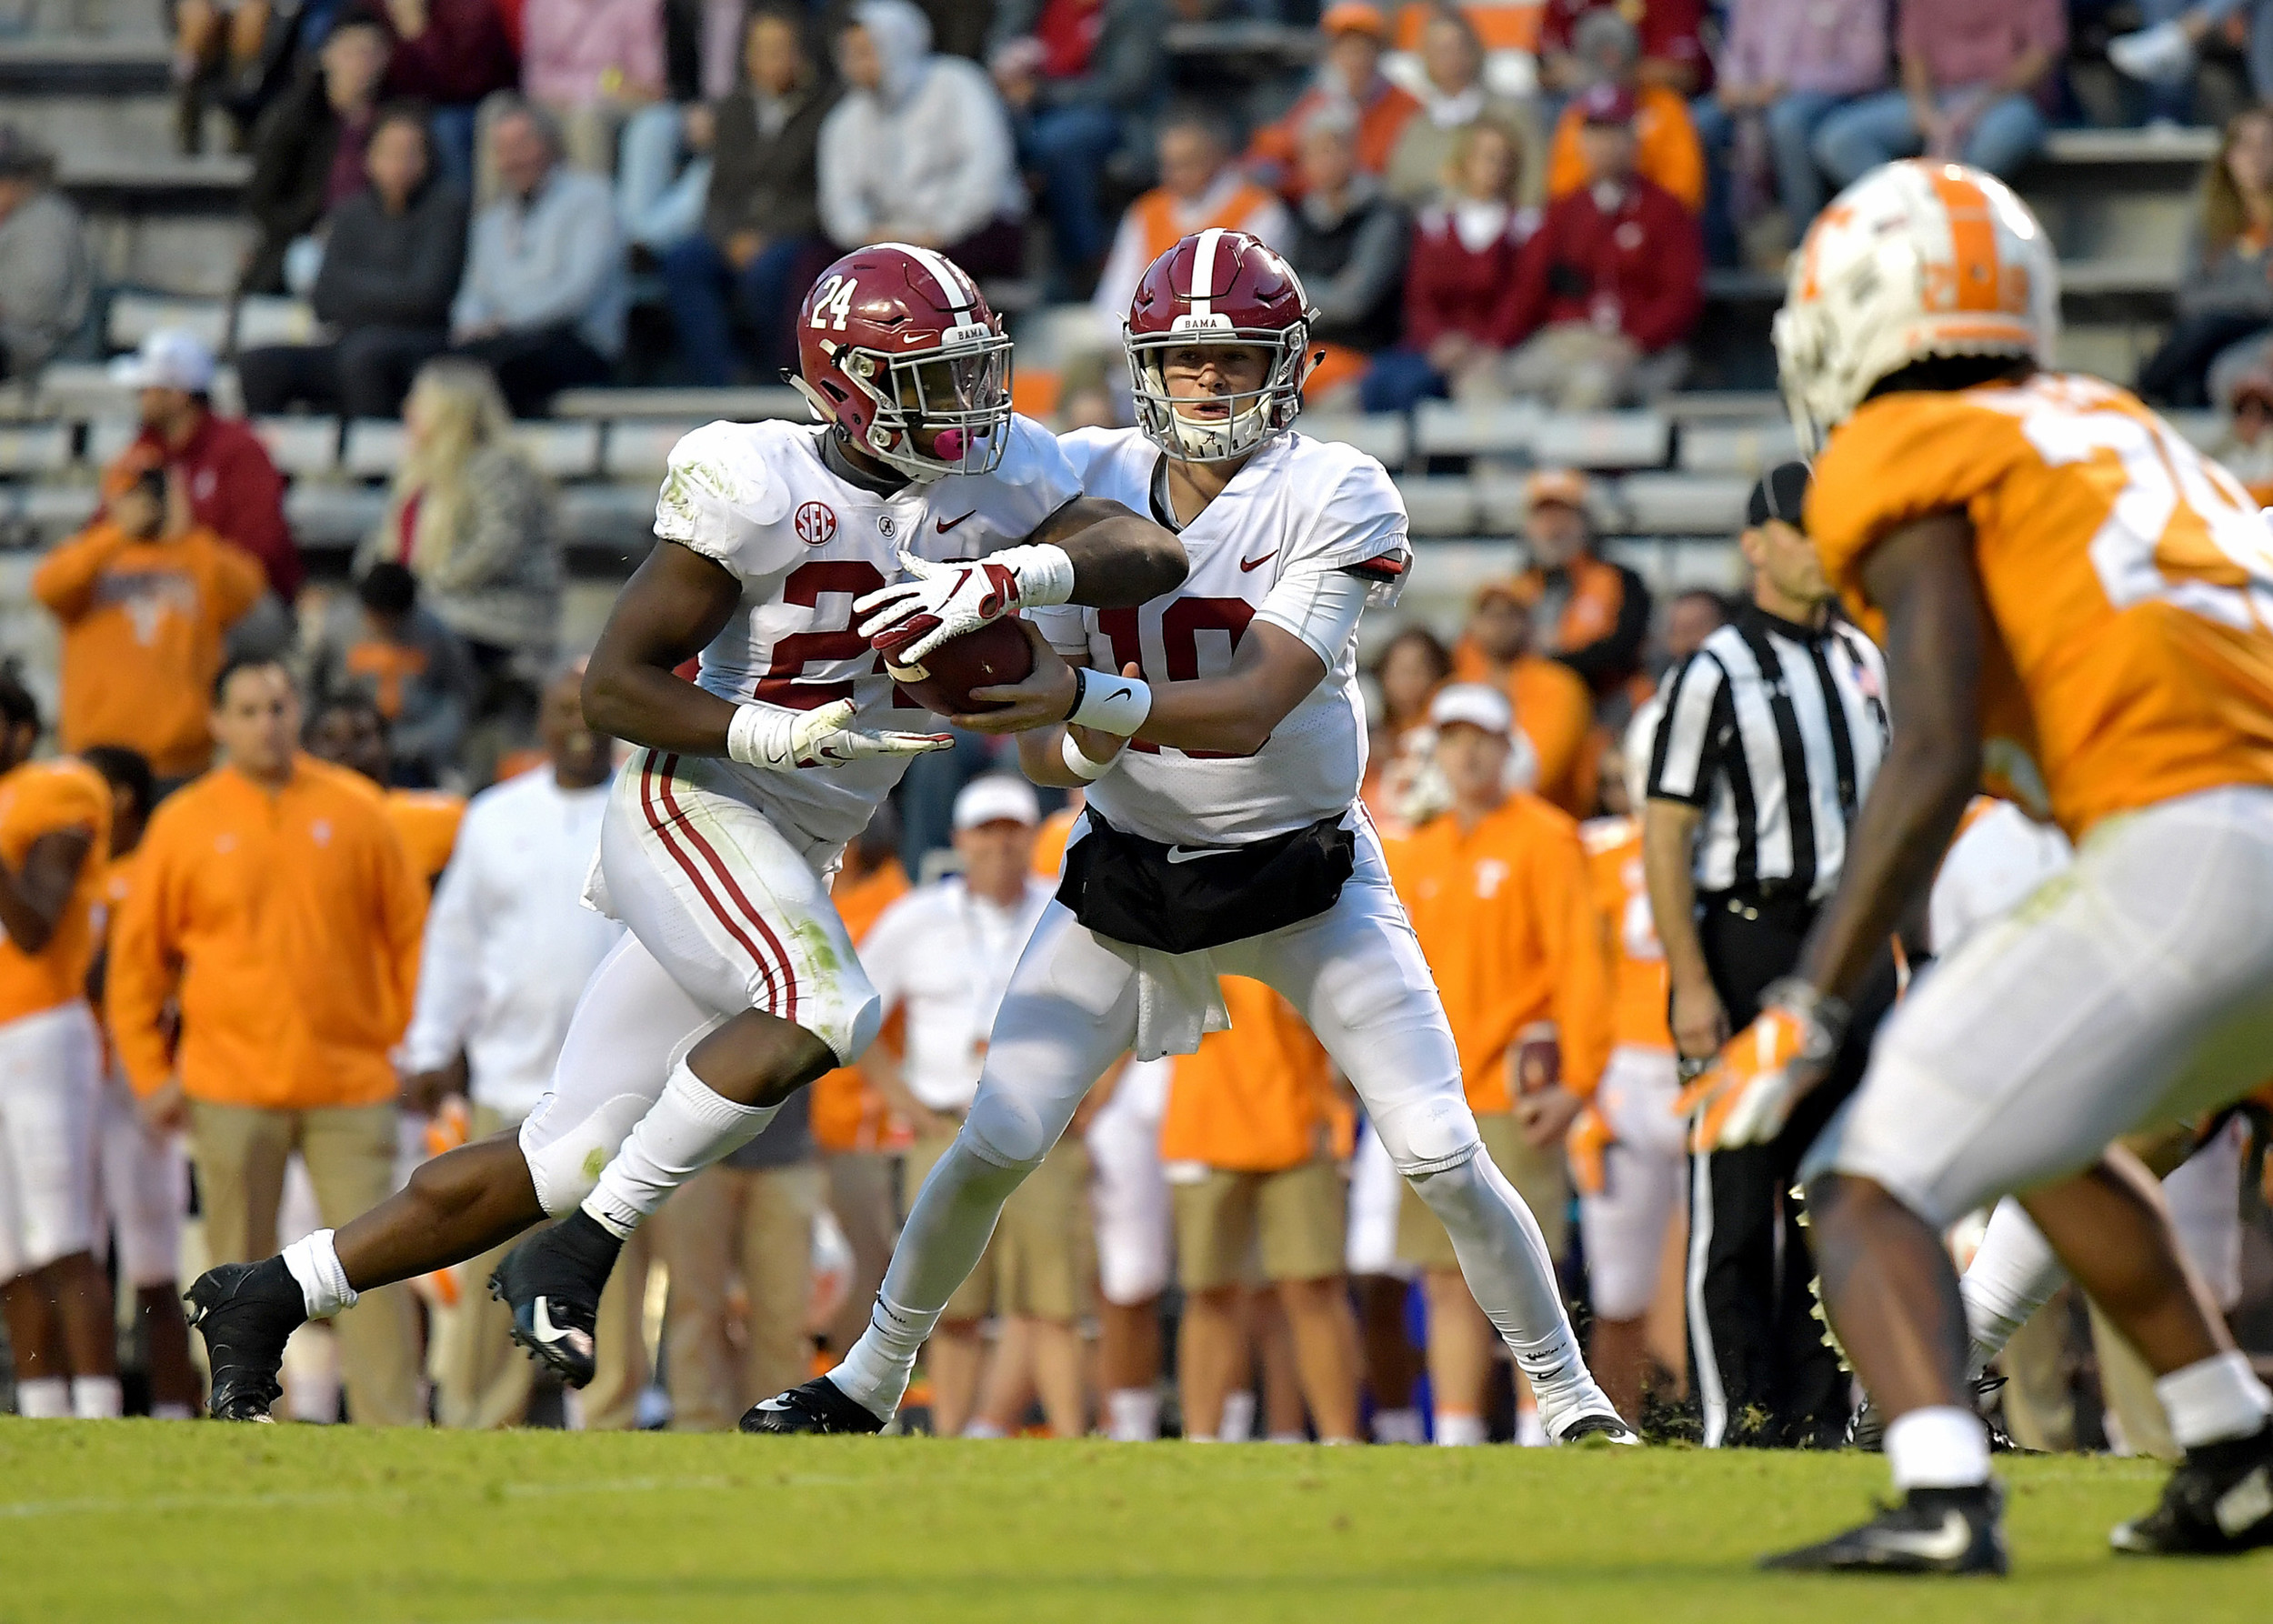 Alabama Crimson Tide quarterback Mac Jones (10) hands off the ball to running back Brian Robinson Jr. (24) late in the fourth quarter of the Alabama at Tennessee NCAA football game on Saturday, Oct. 20, 2018, at Neyland Stadium in Knoxville. Tenn. Alabama wins 58-21. (Photo by Lee Walls)